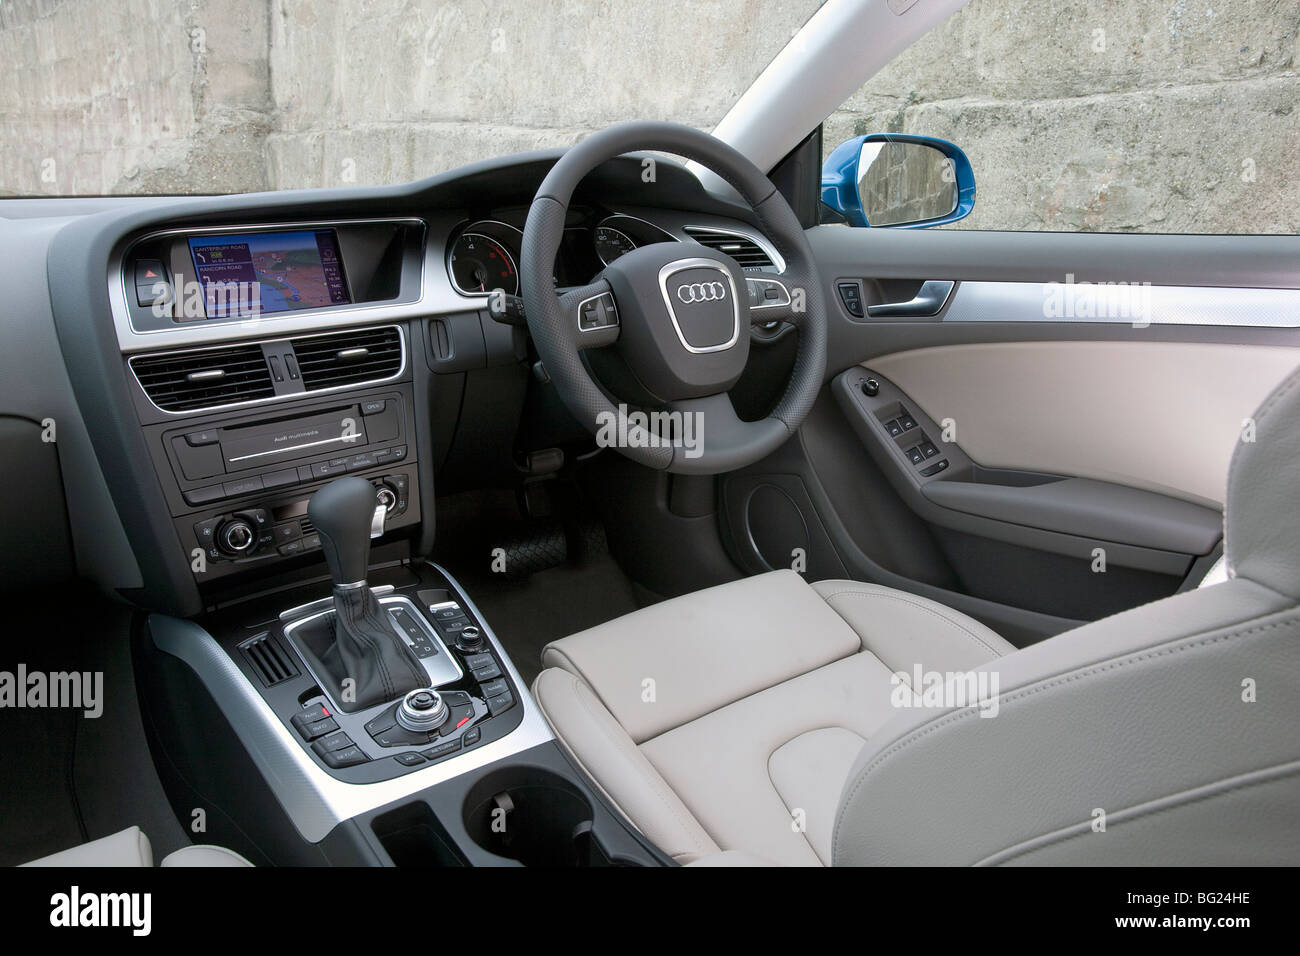 Audi Interior High Resolution Stock Photography And Images Alamy